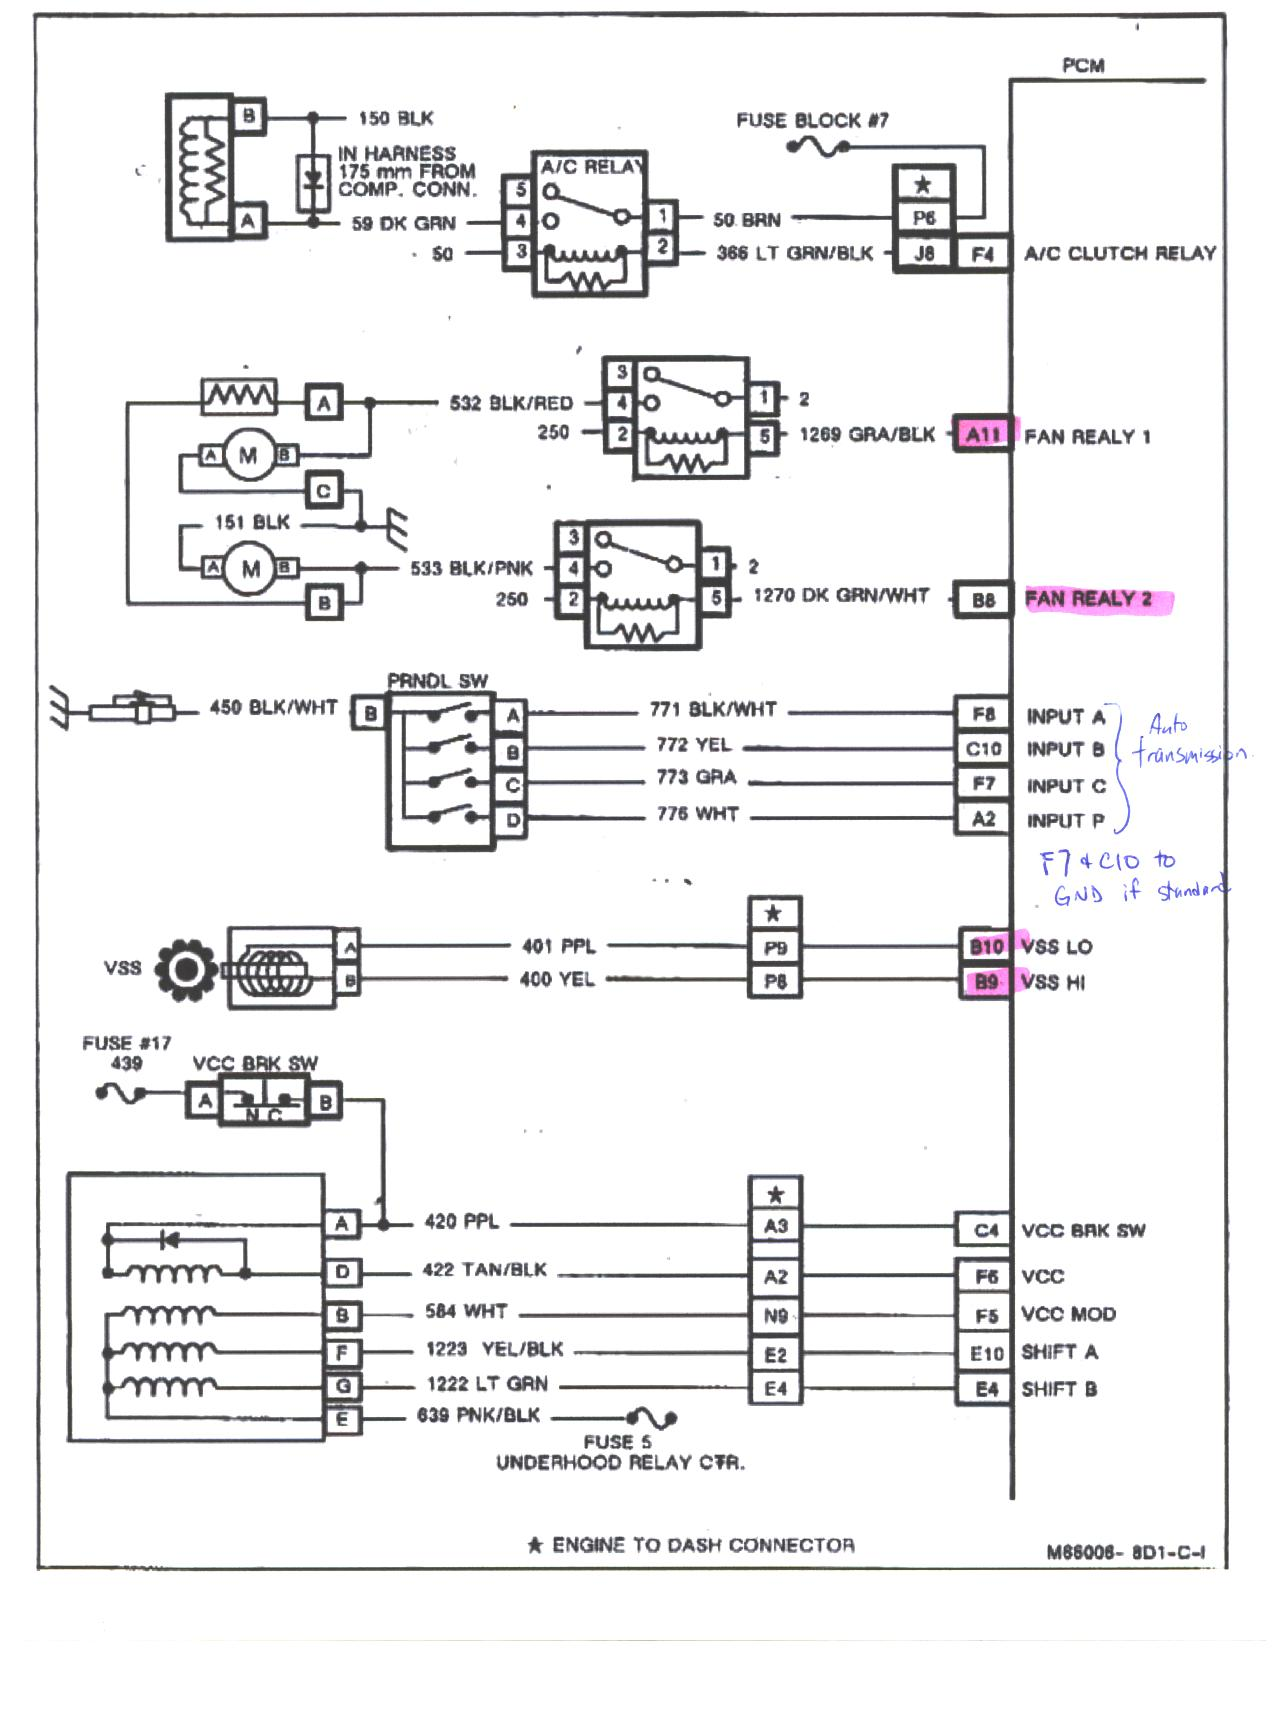 chevy astro van wiring diagram IYgoePB chevy astro van wiring diagram image details astro van wiring harness at reclaimingppi.co